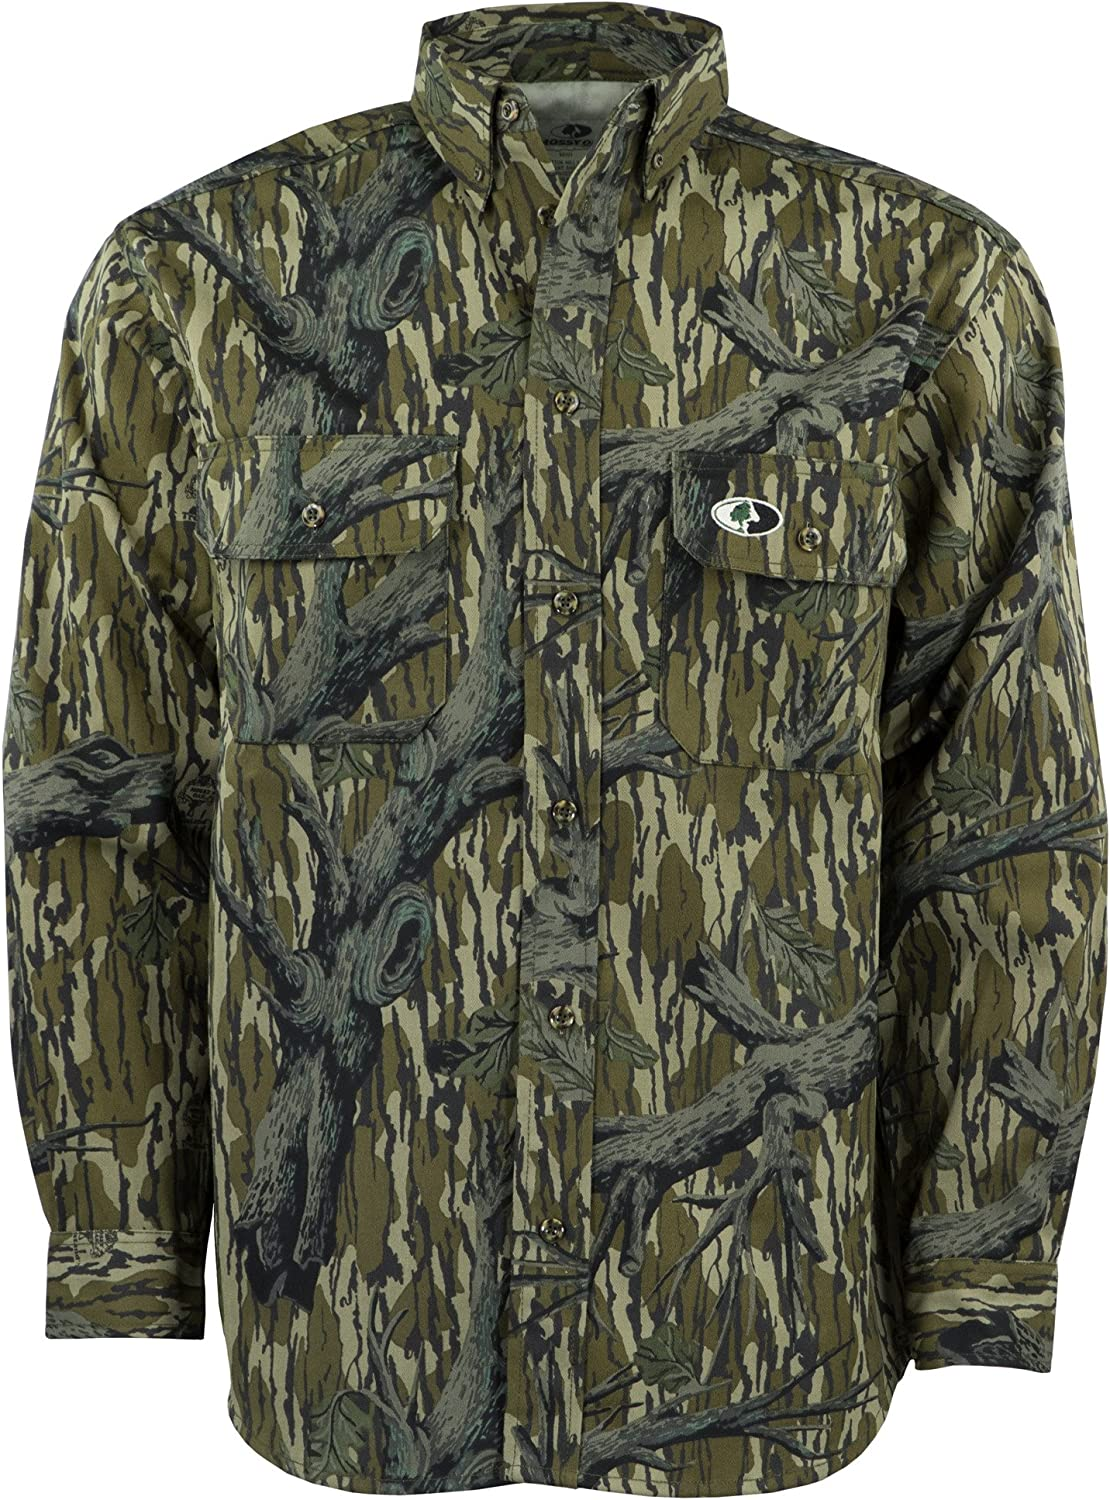 Mossy Oak Men's Camouflage Shirt Mill Cotton Max 44% OFF Max 74% OFF Hunt